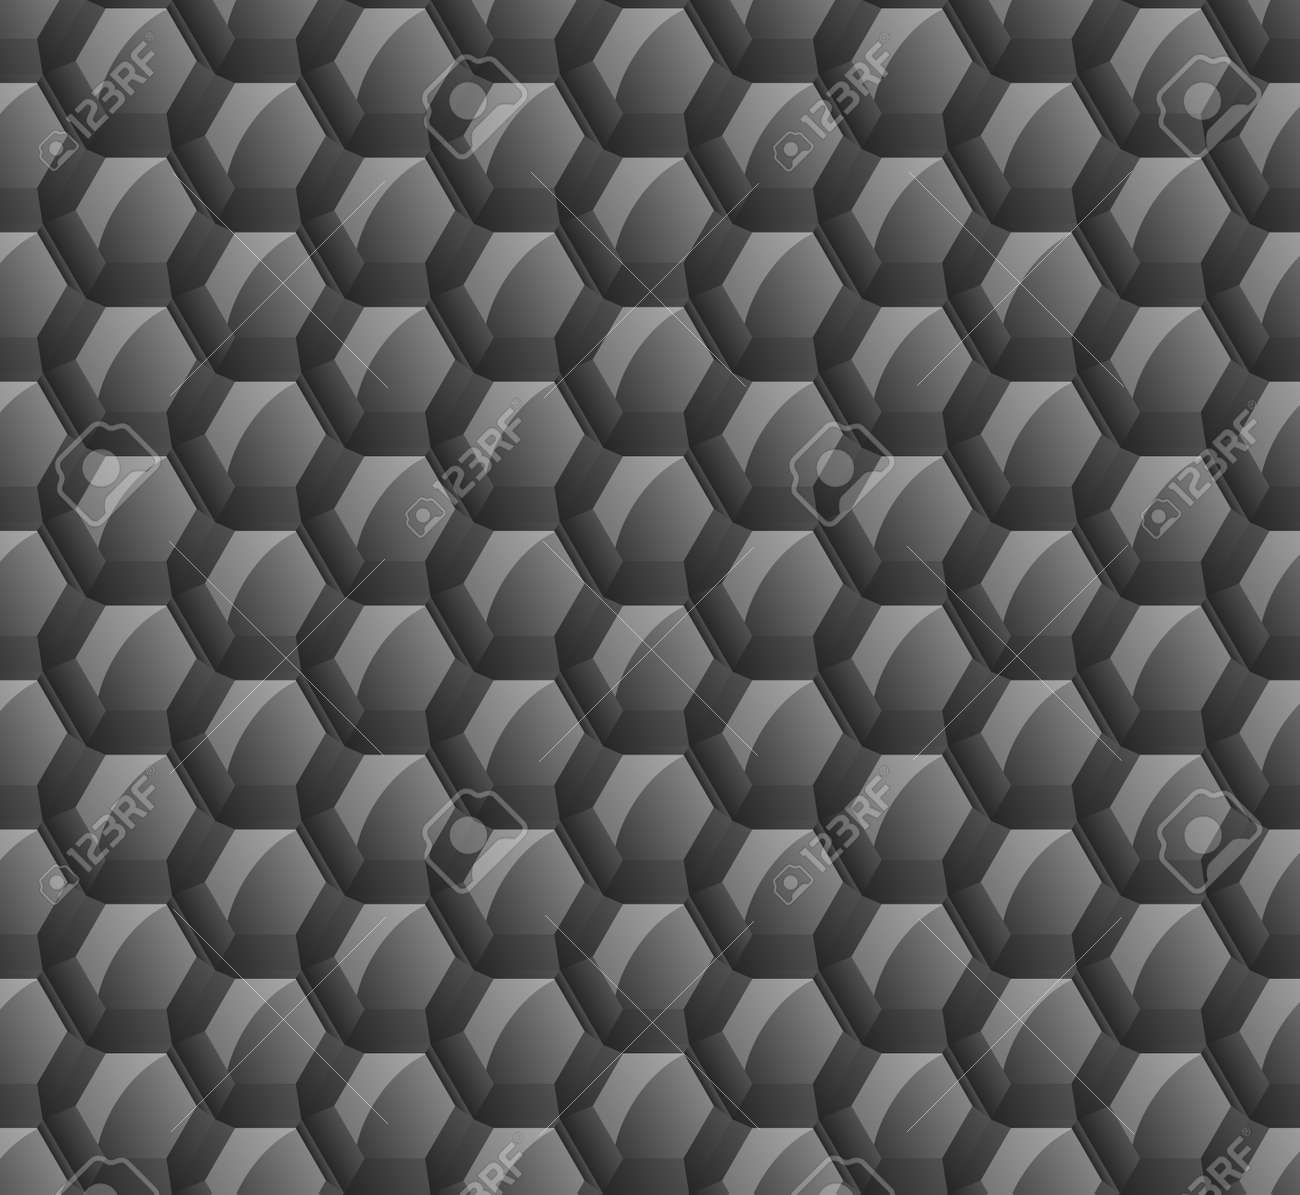 abstract background of black hexagons. wallpapers for web sites